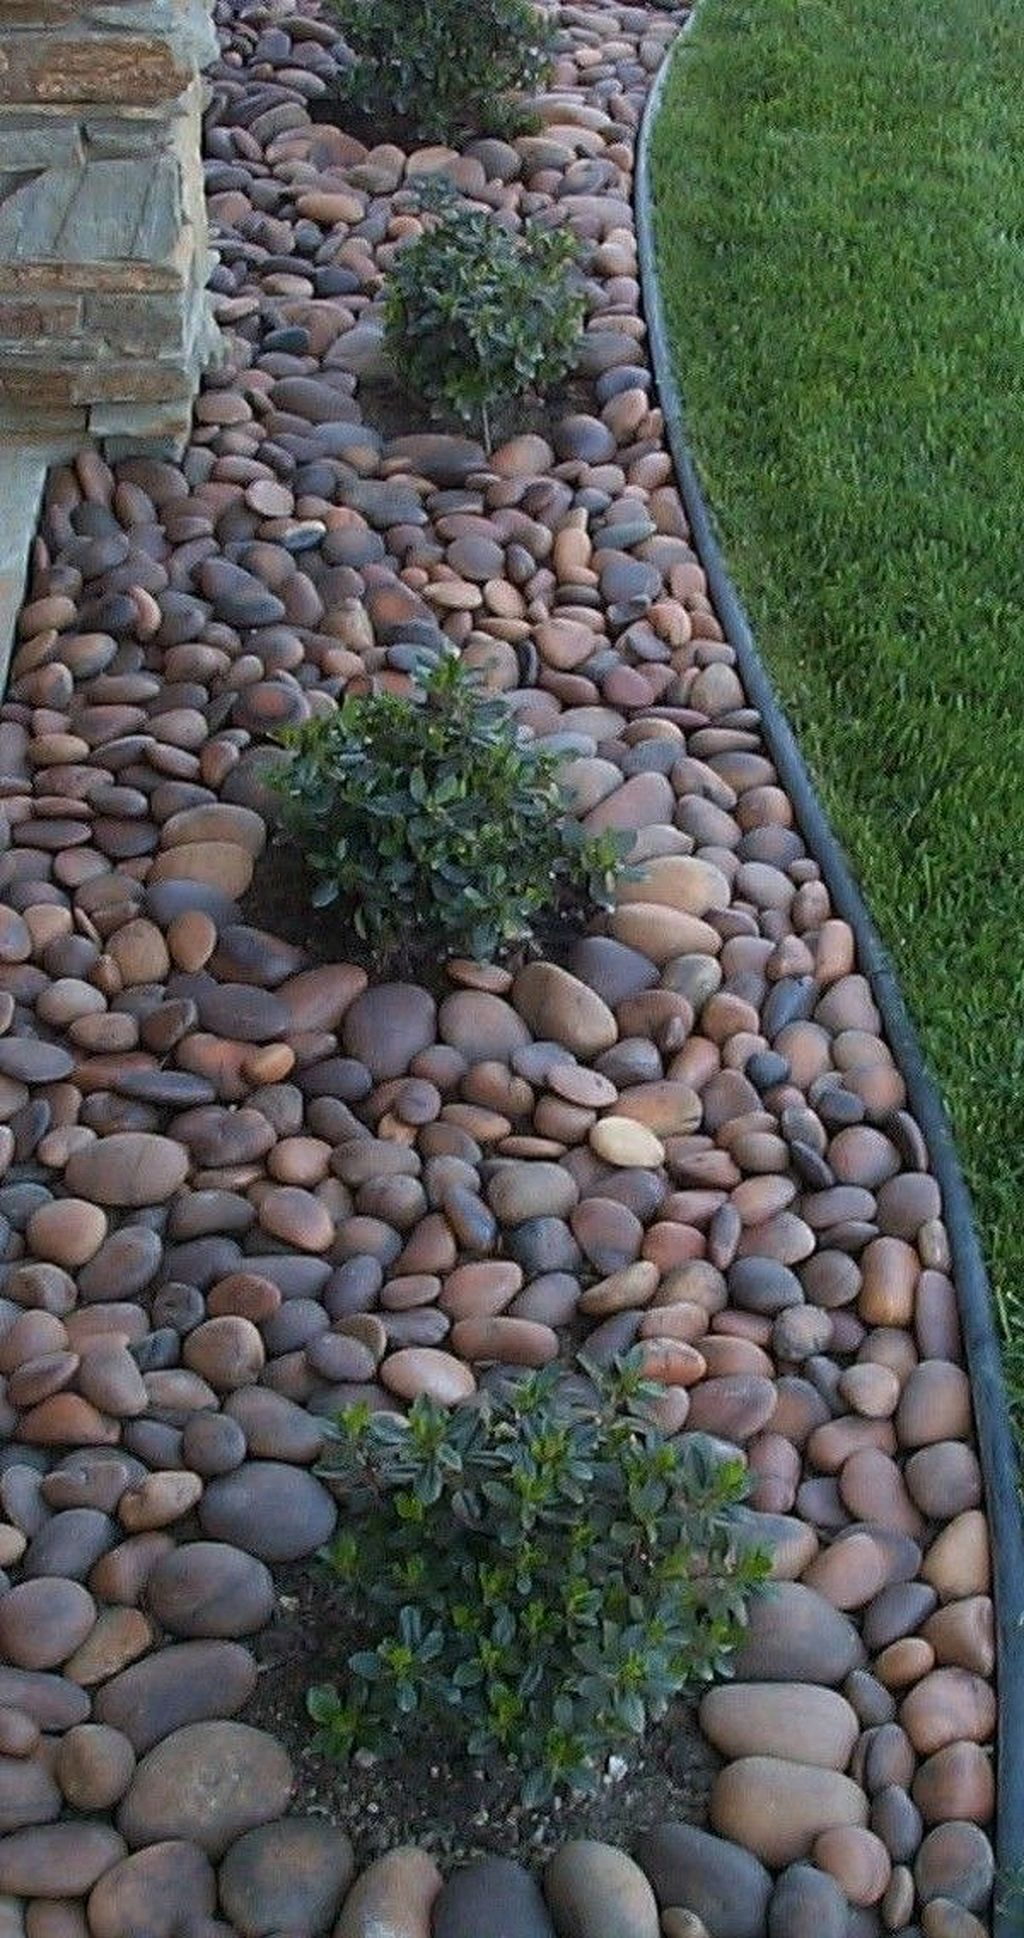 Amazing 30 Fancy Garden Decorating Ideas With Rocks And Stones Https Kidmagz Com 30 Fancy Rock Garden Landscaping Landscaping With Rocks Rock Garden Design